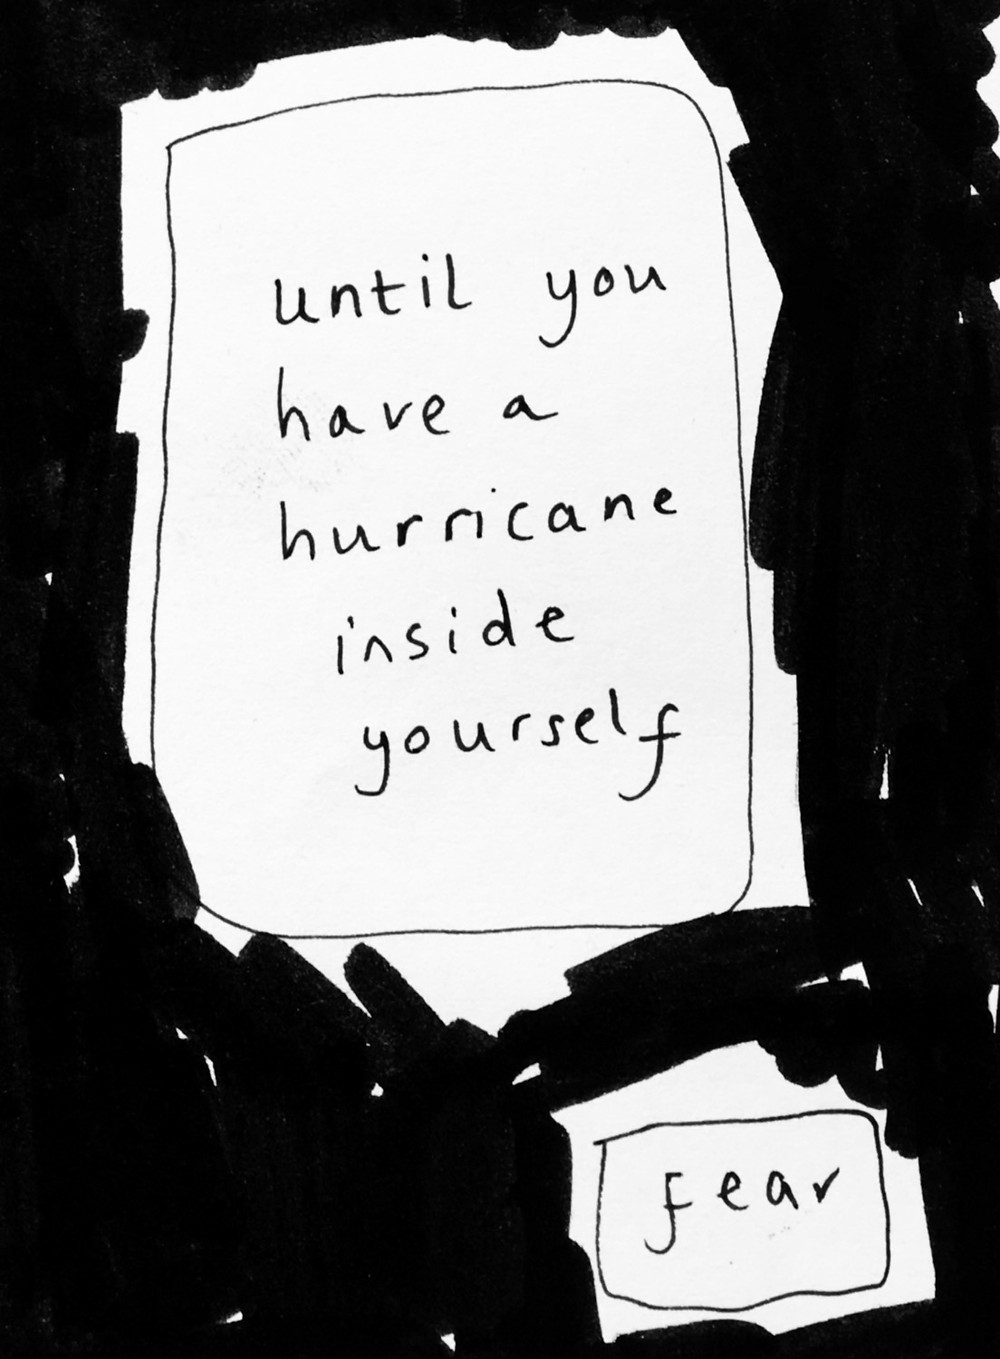 Image from one of my zines stating 'until you have a hurricane inside yourself' and 'fear'.